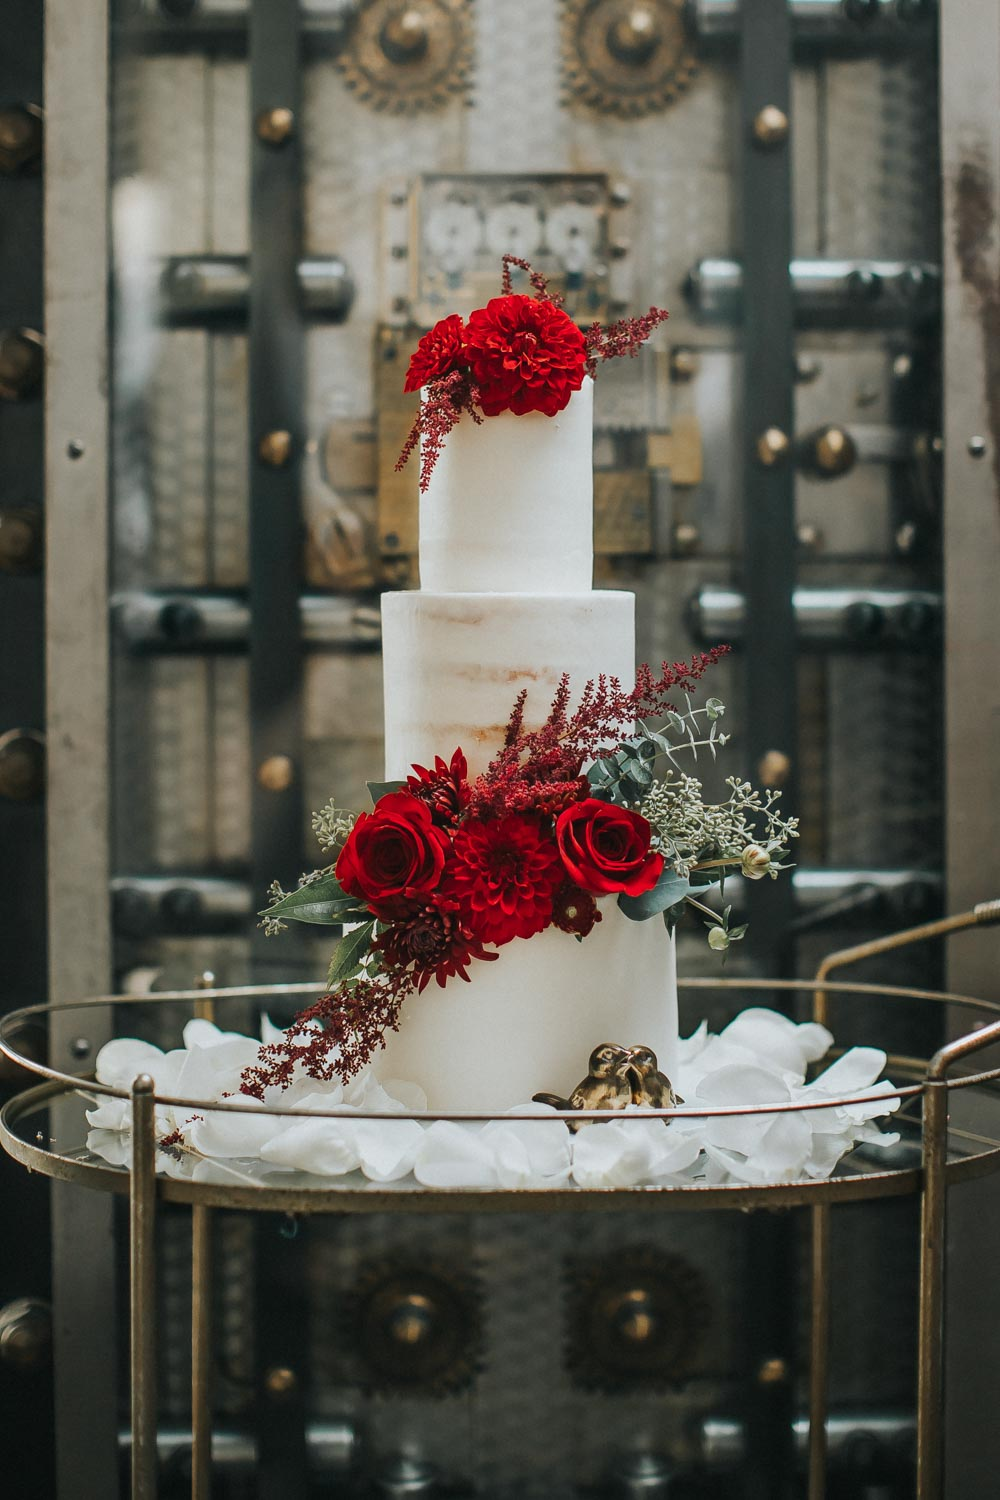 white-and-bright-red-cake-rad-red-creative-the-vault-93